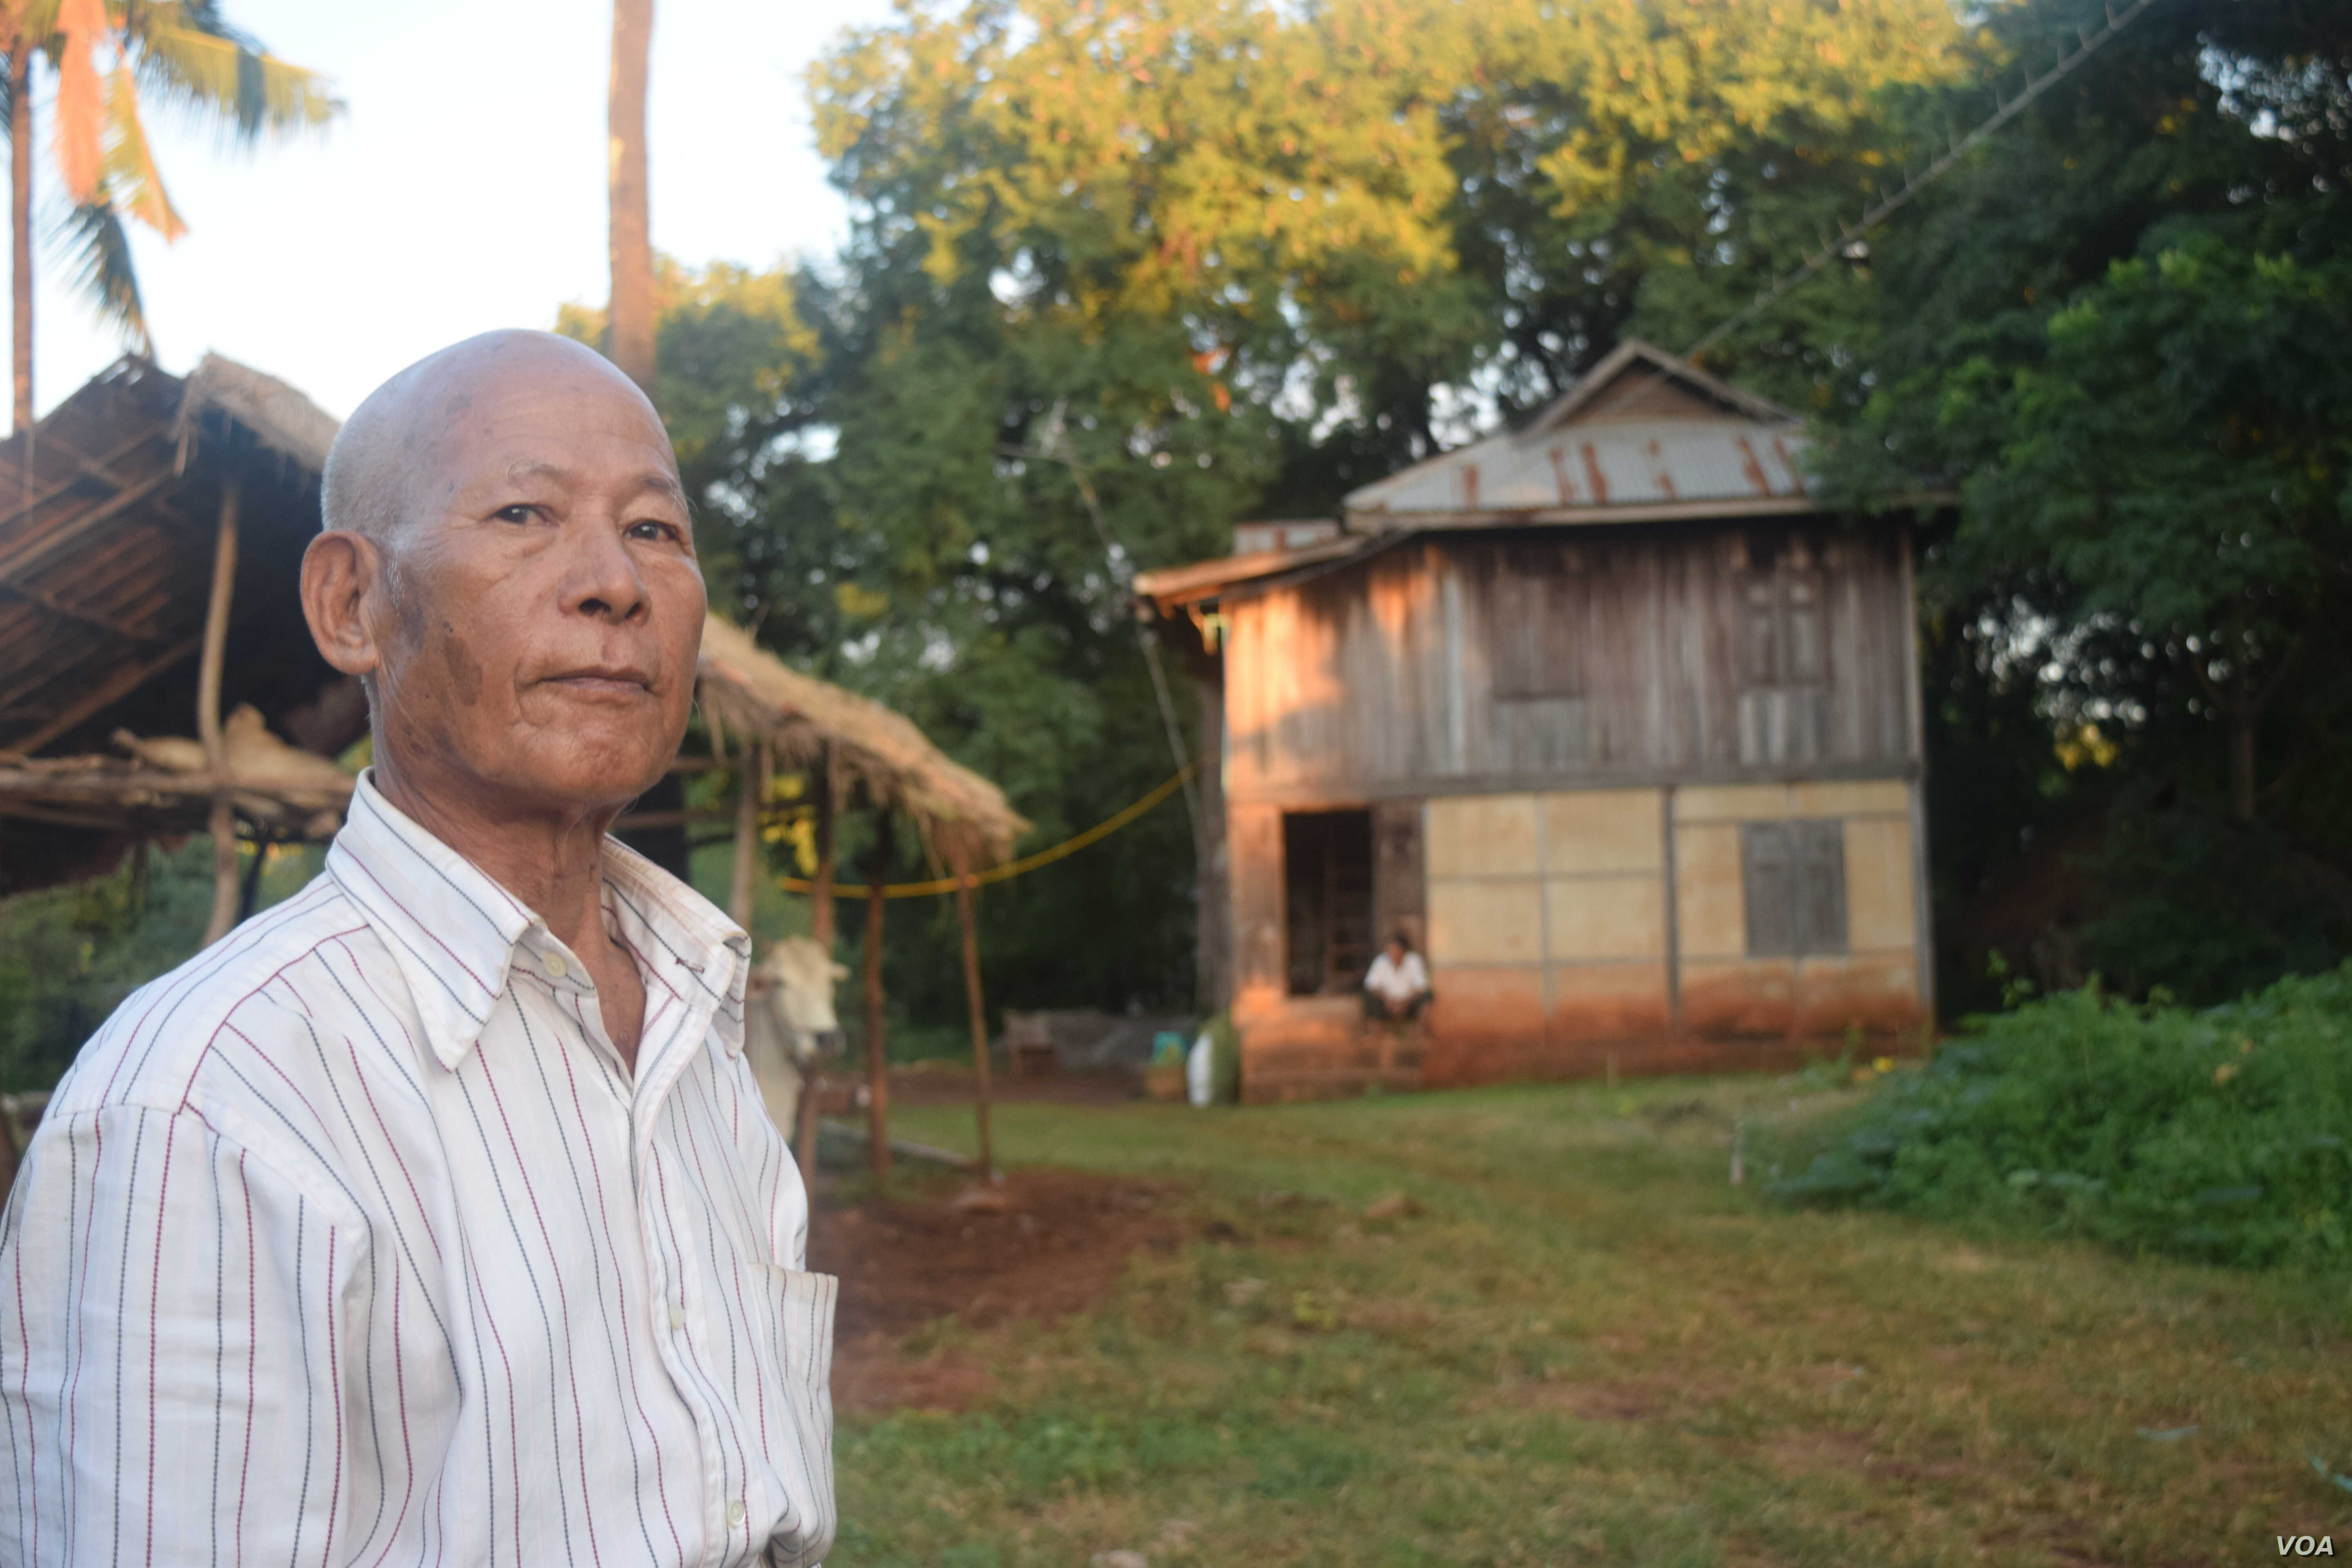 A rural village near Pyin Oo Lwin township were villagers are disgruntled with the ruling party for land seizures dating back to over three decades (Daniel de Carteret/VOA News)